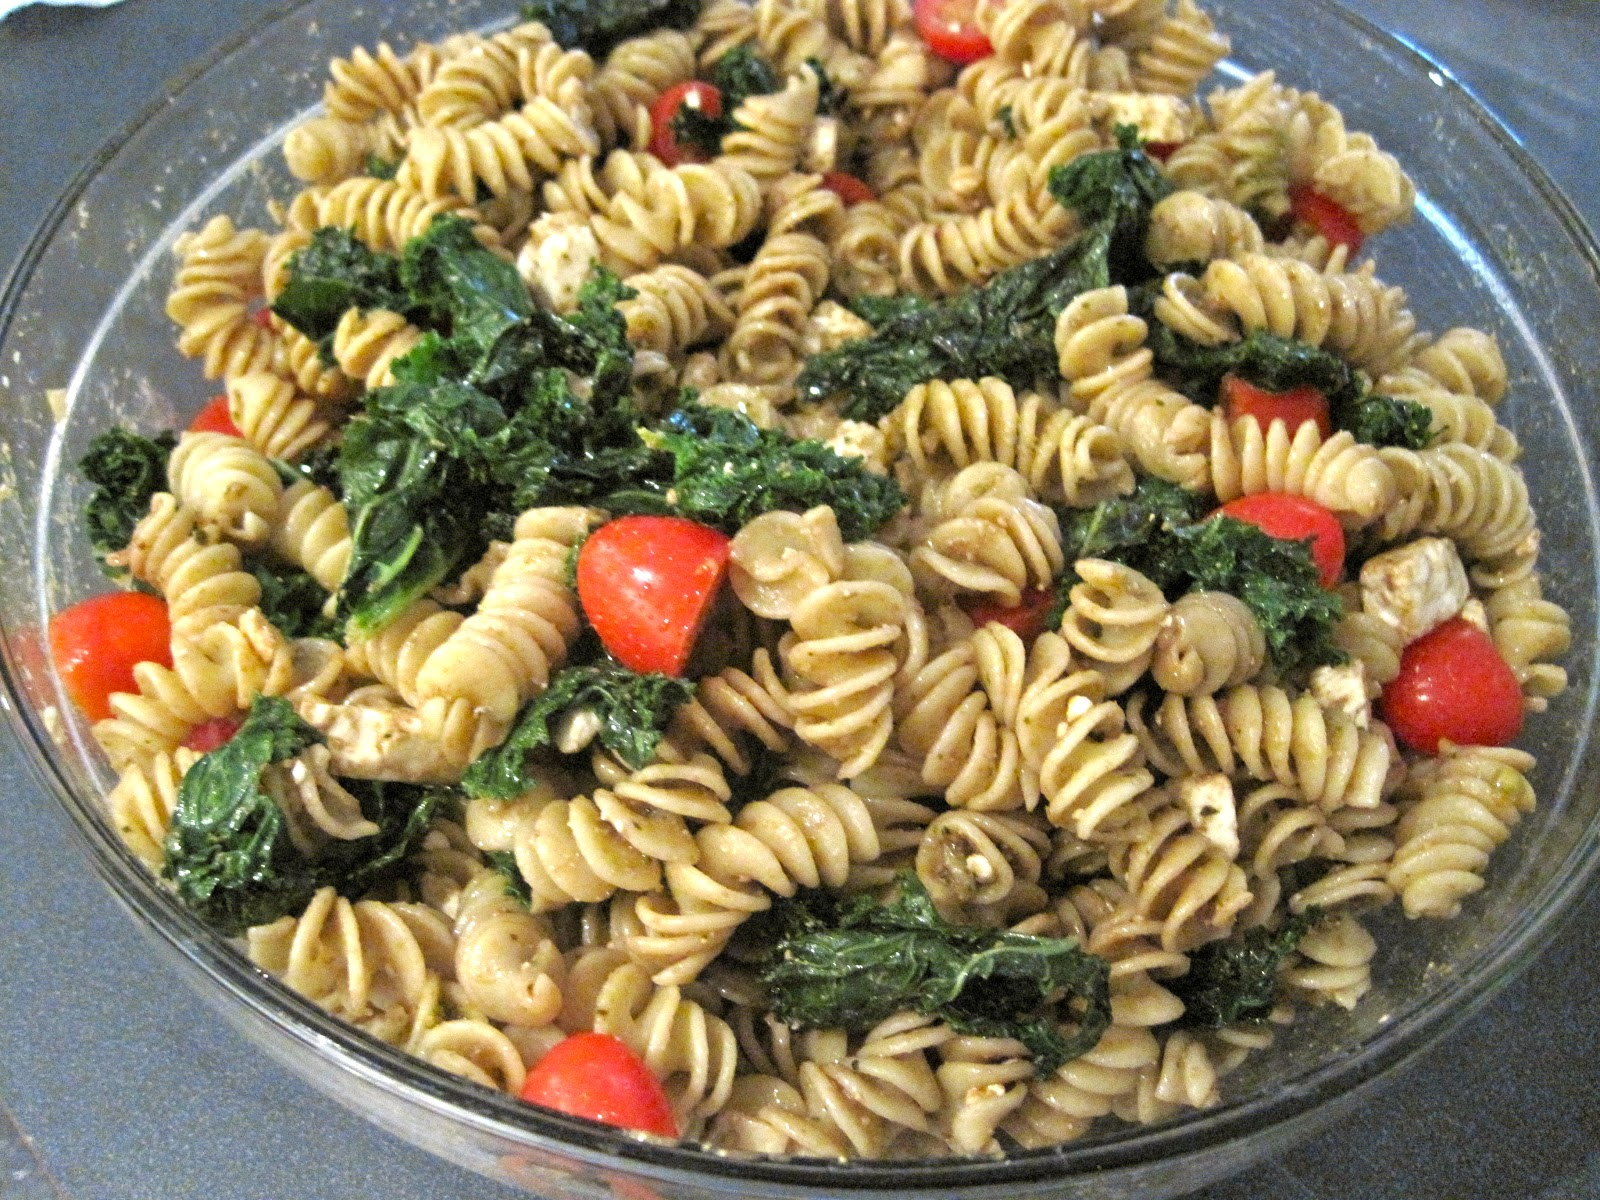 Kristen's Kitchen: Whole Wheat Pasta Salad with Fried Kale, Tomatoes ...